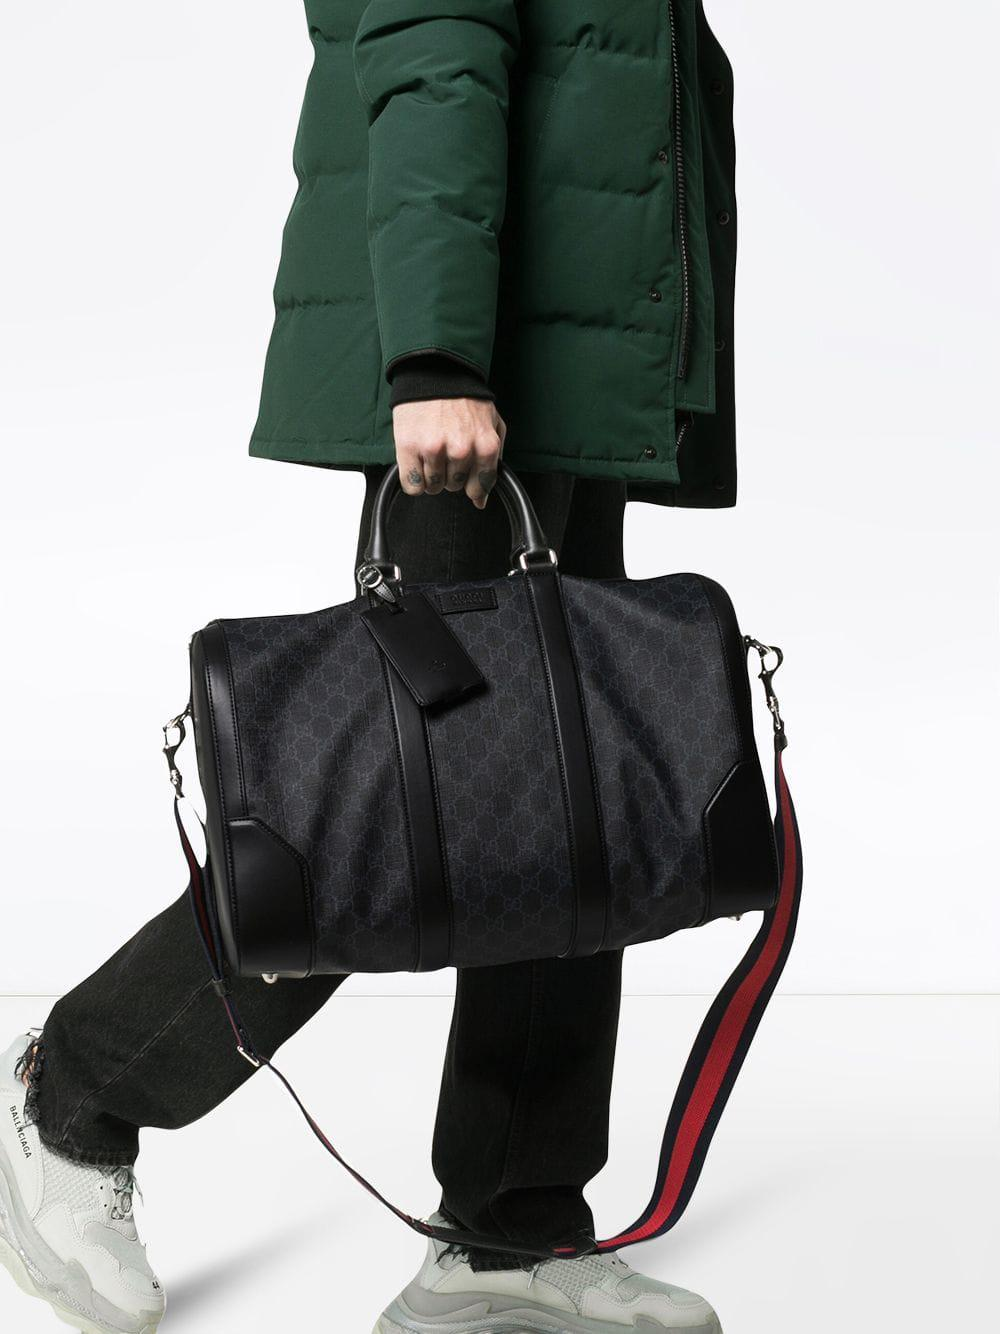 81a40f9f58b076 Gucci Soft GG Supreme Carry-on Duffle in Black for Men - Save 10% - Lyst